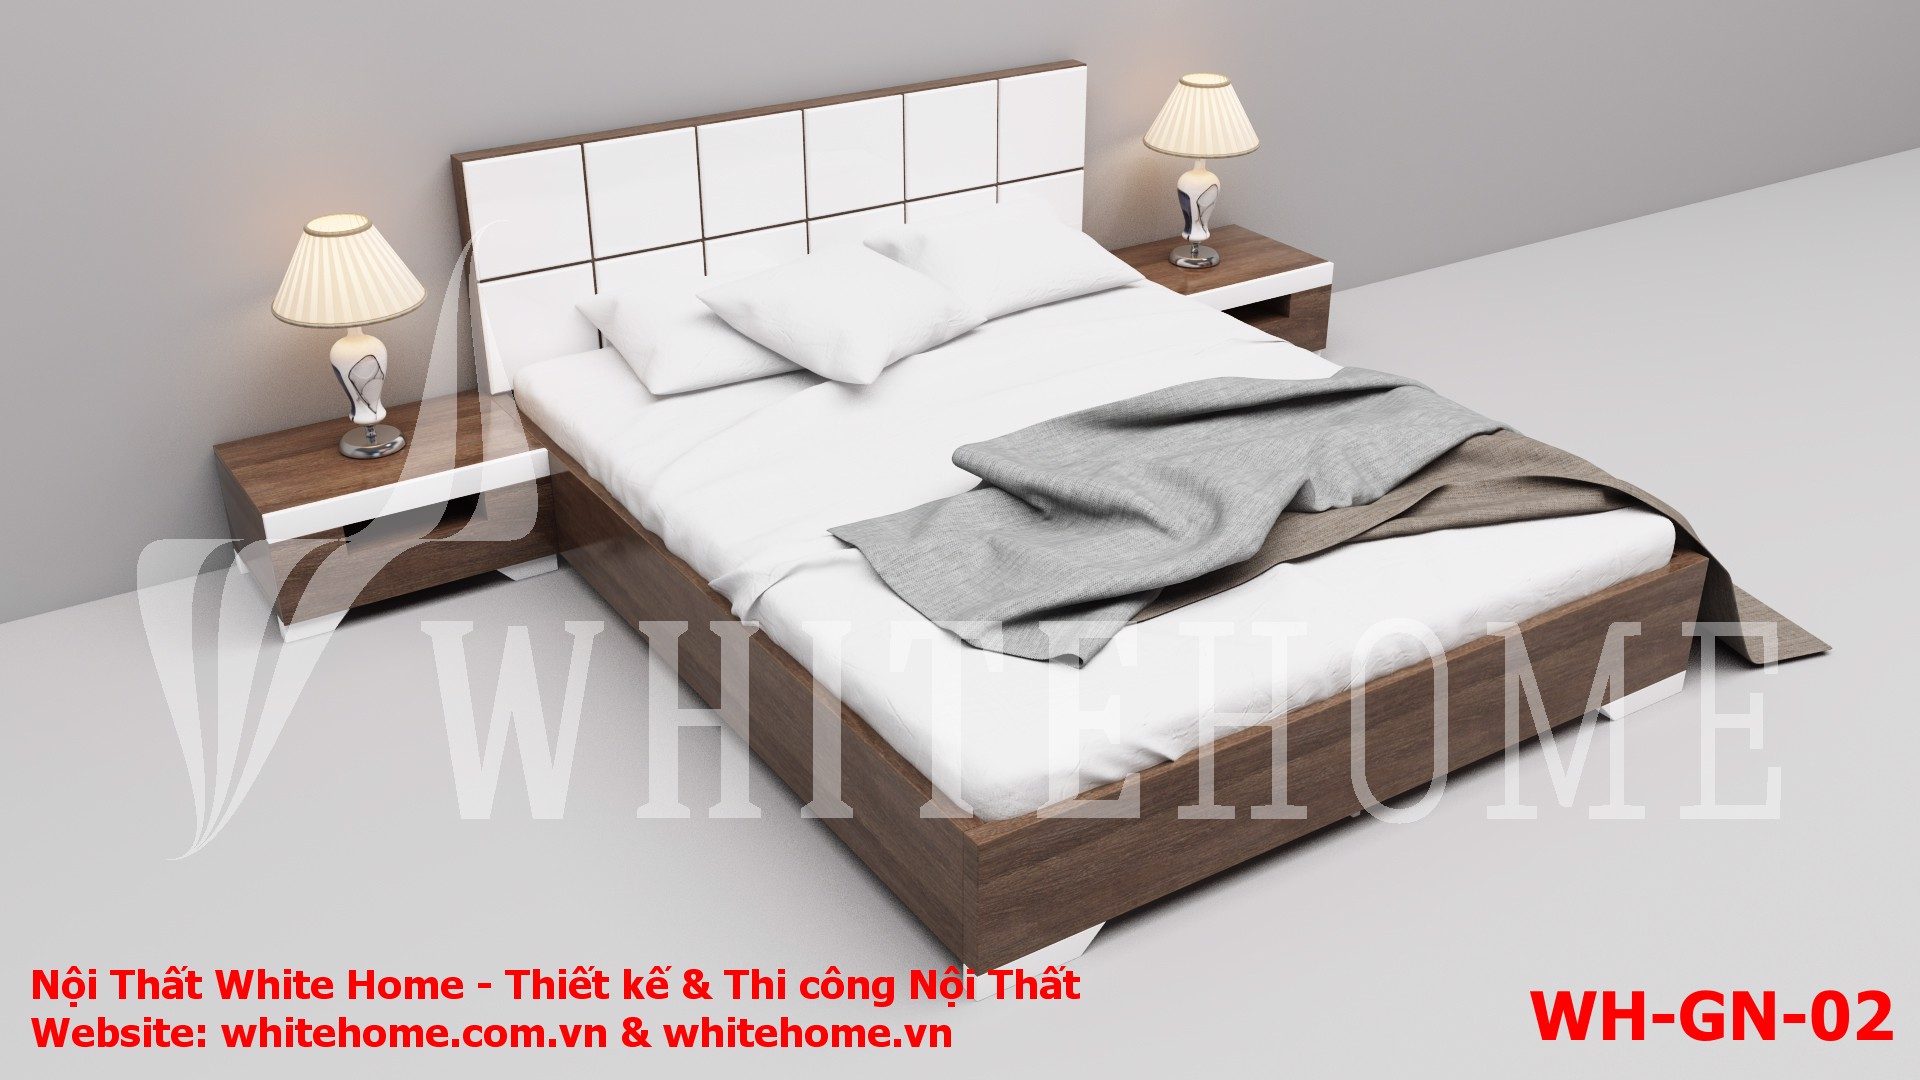 Gường ngủ WH-GN-02 - Nội Thất White Home